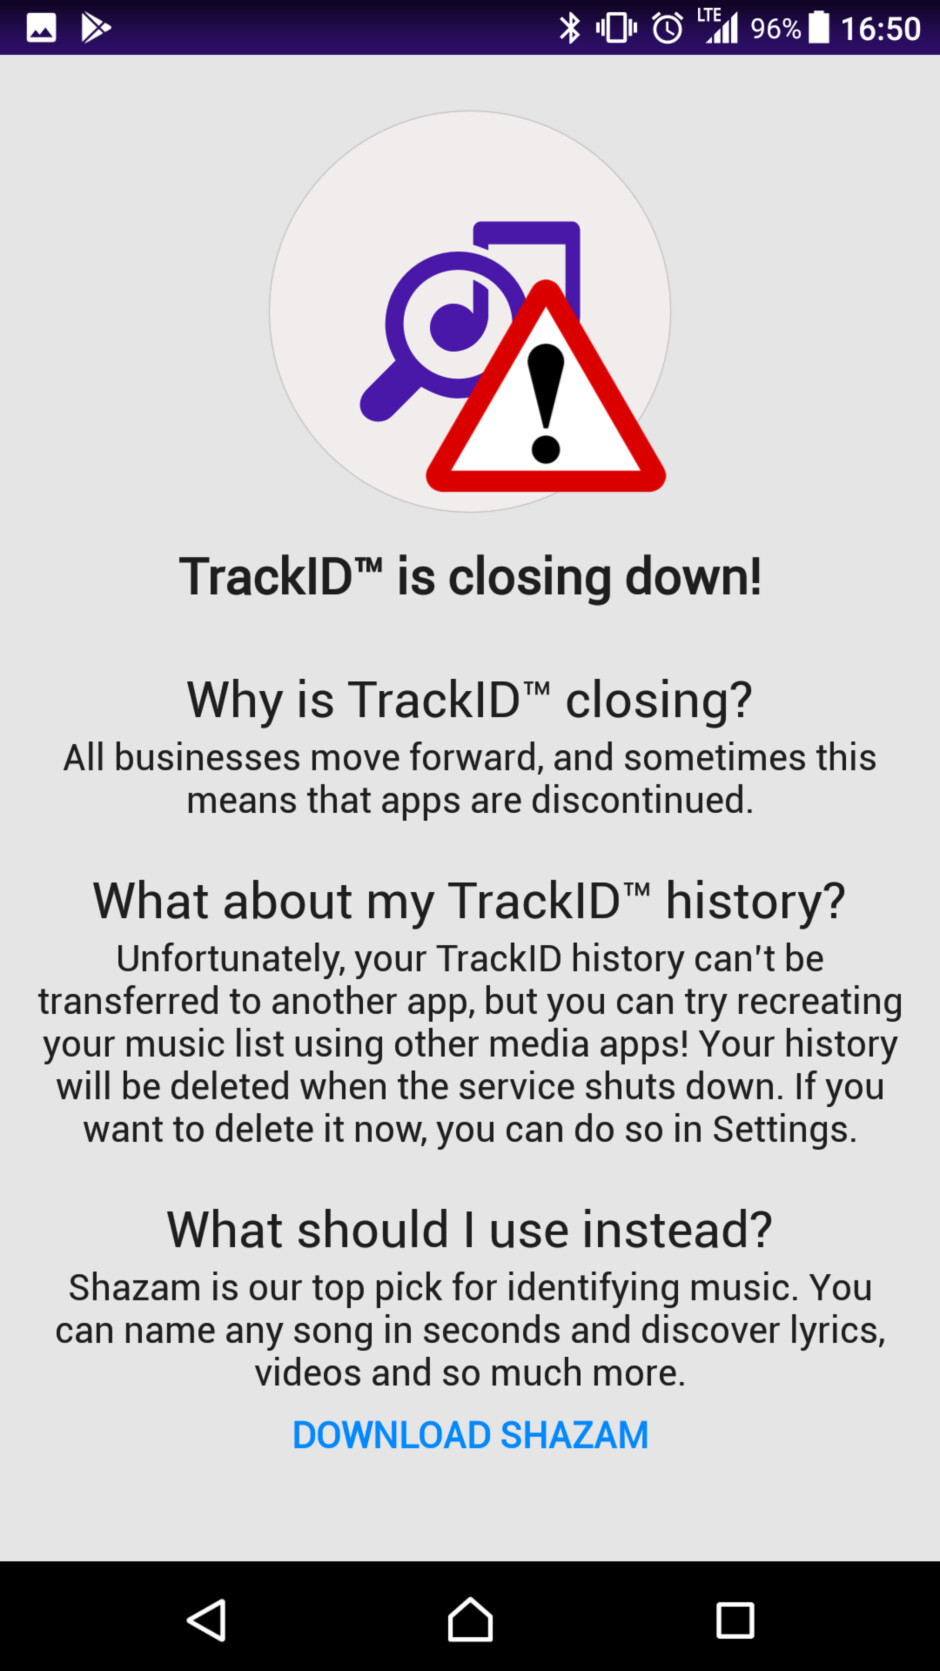 Sony's TrackID music recognition service is closing down